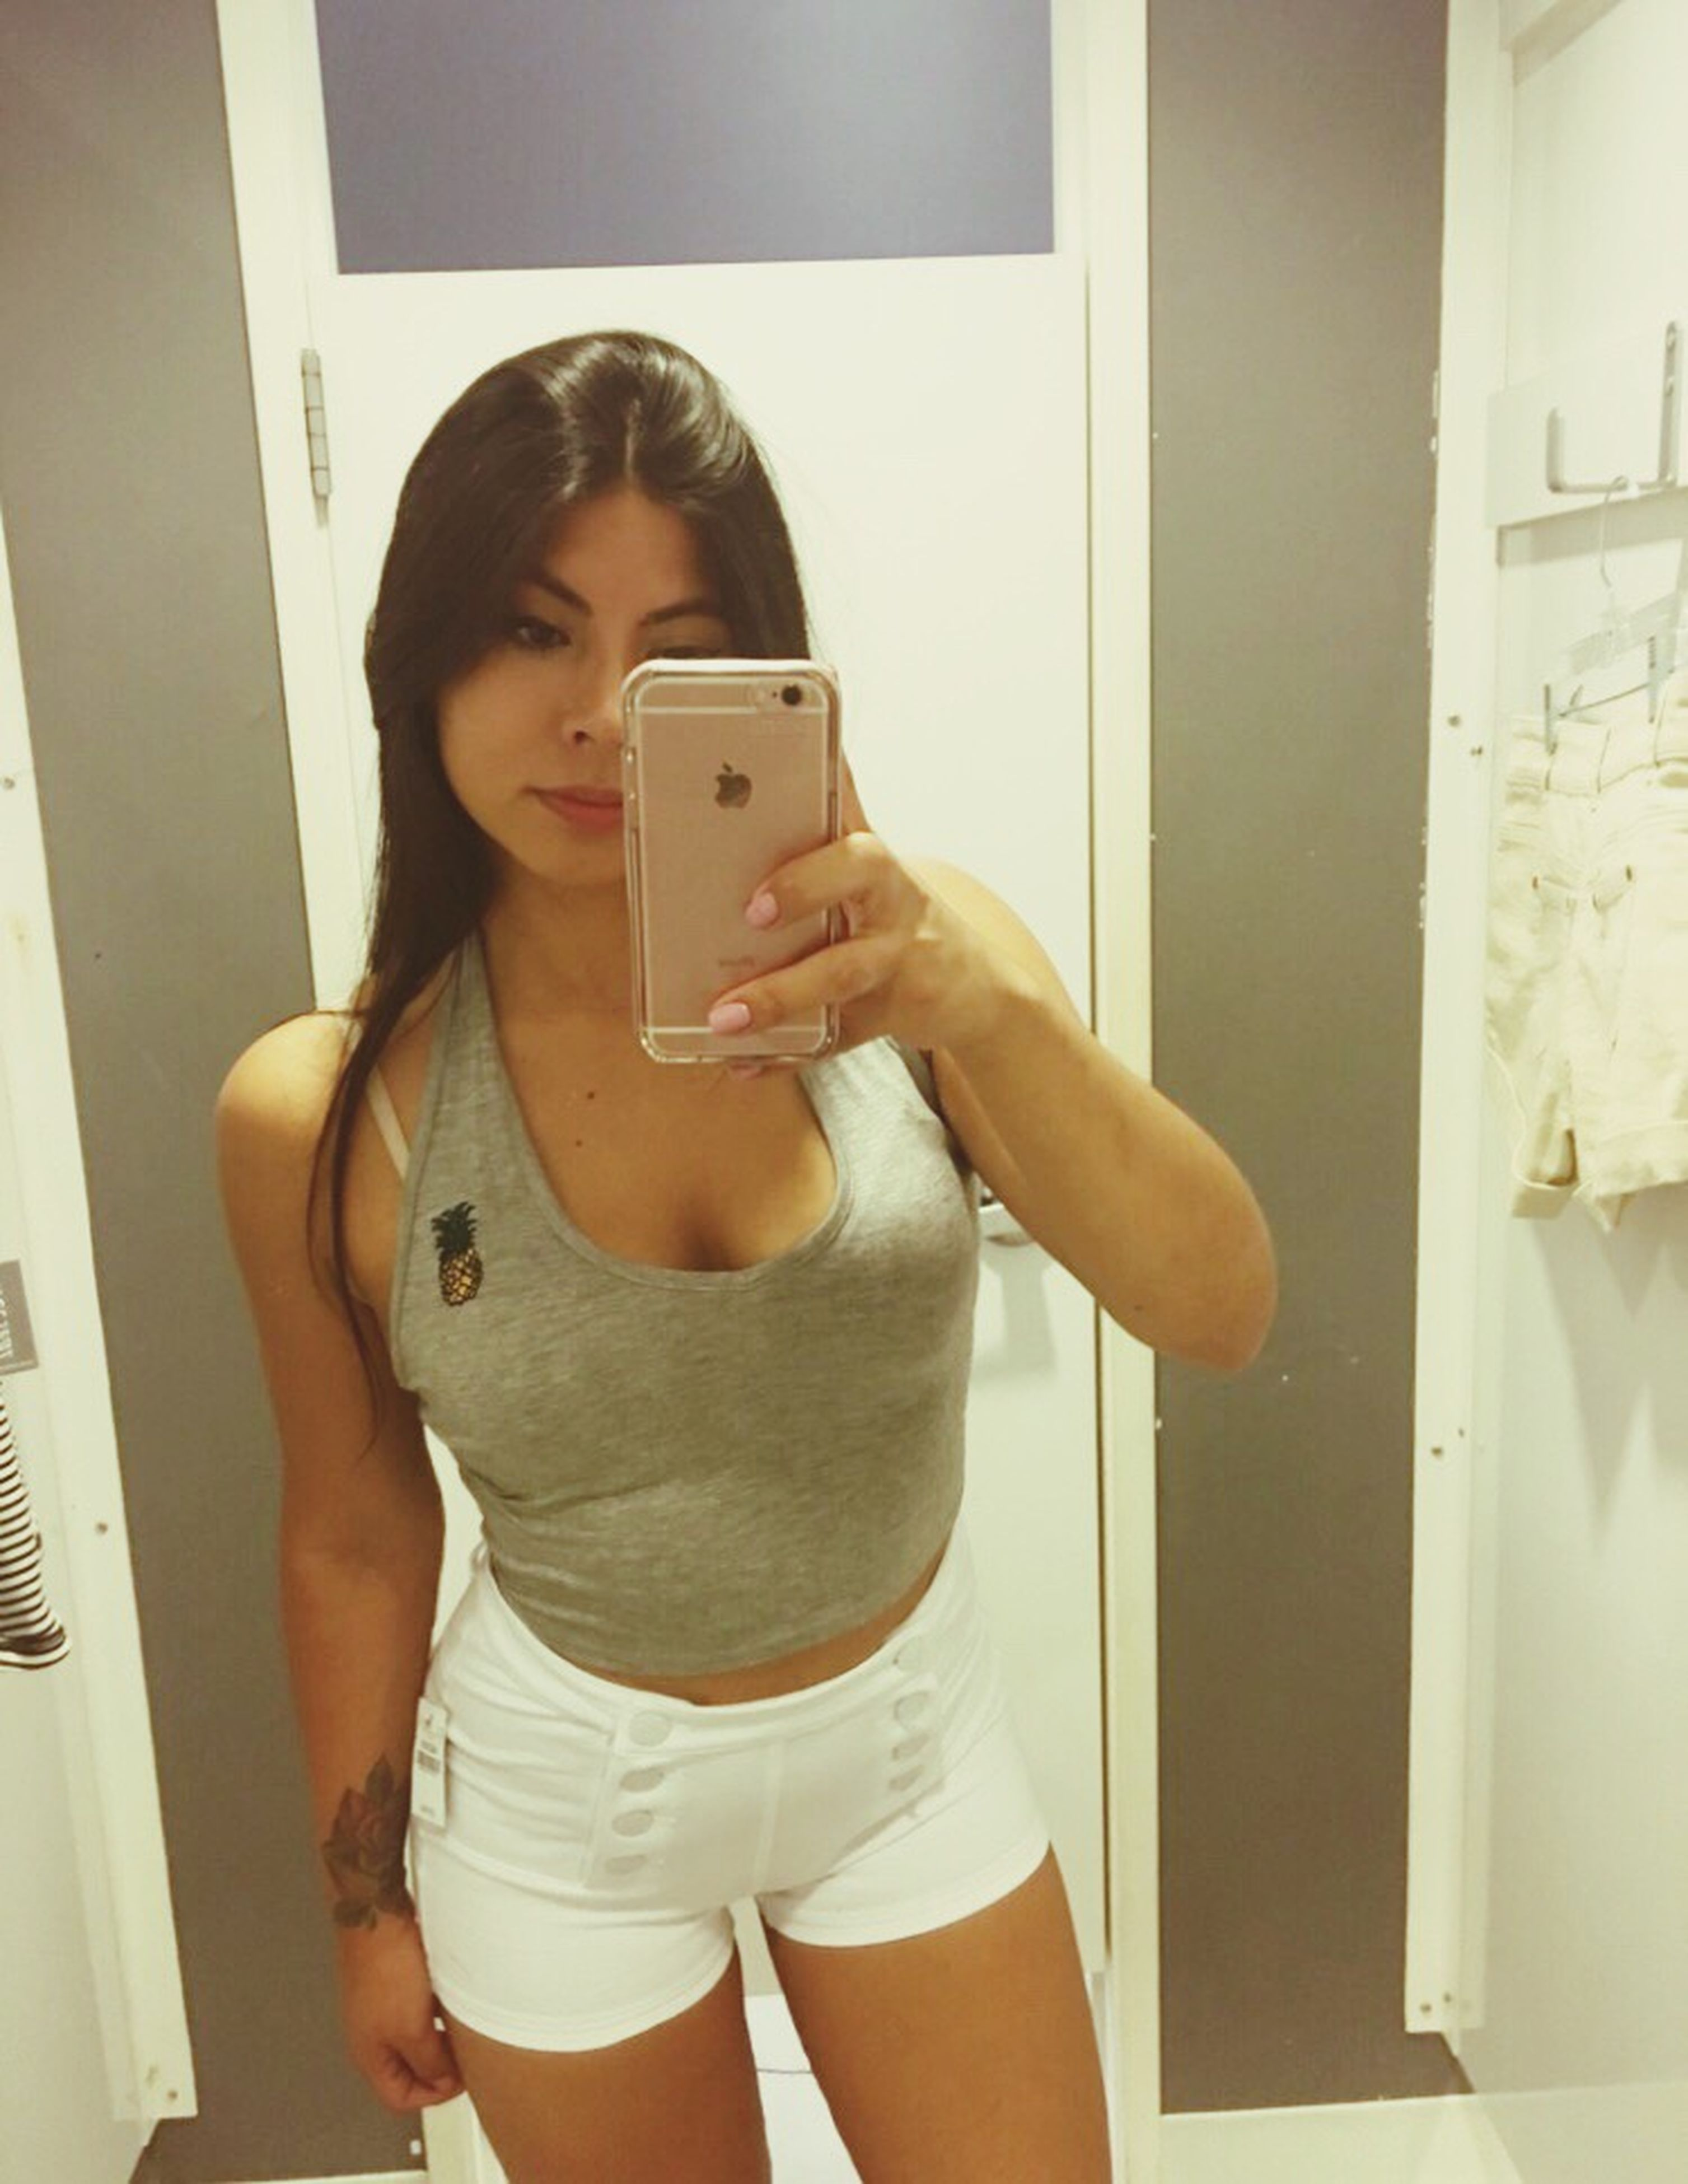 Girl Latina New Fitting Room Selfie Followme Like  Eyeem-4052